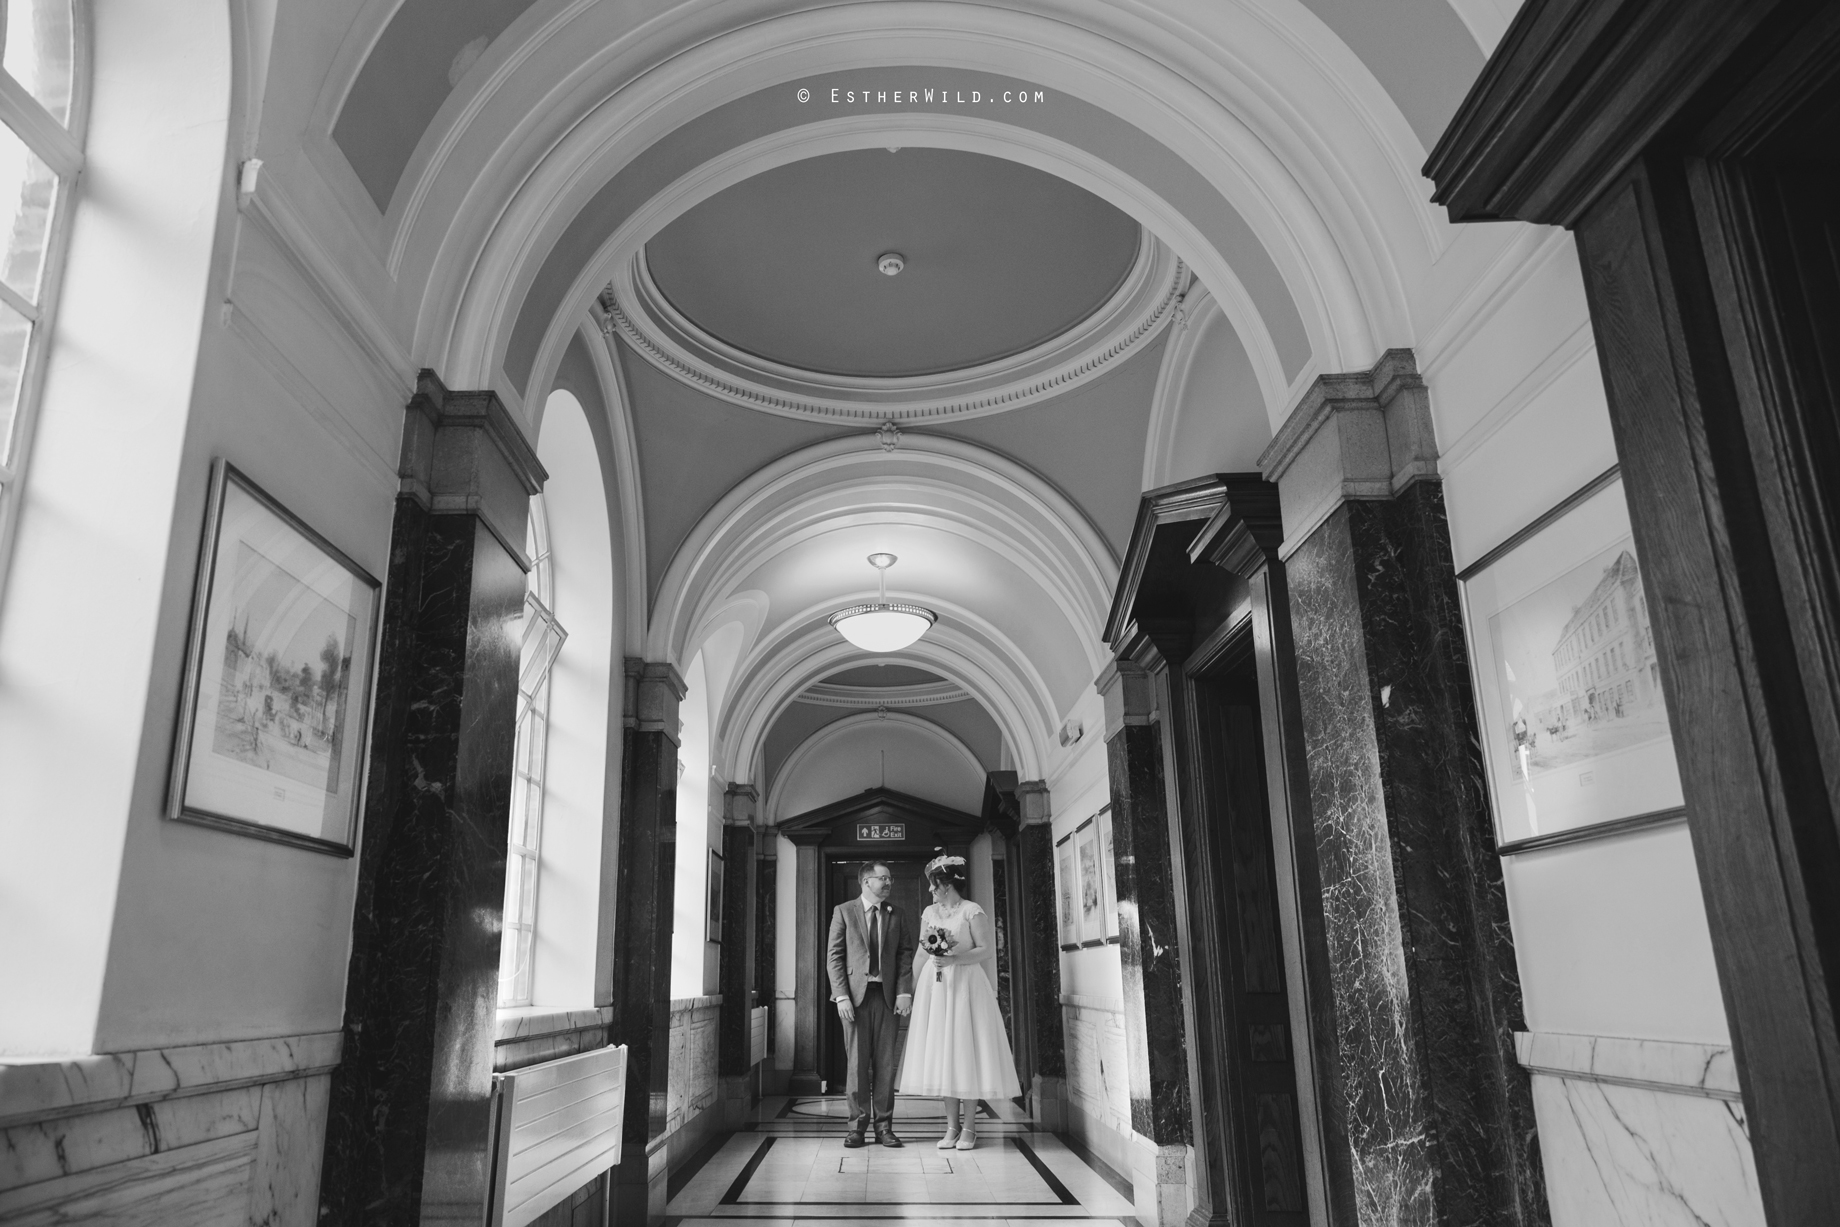 Islington_Town_Hall_Assembly_Hall_Council_Chamber_The_Star_Pub_London_Sacred_Wedding_Copyright_Esther_Wild_Photographer_IMG_0557-1.jpg